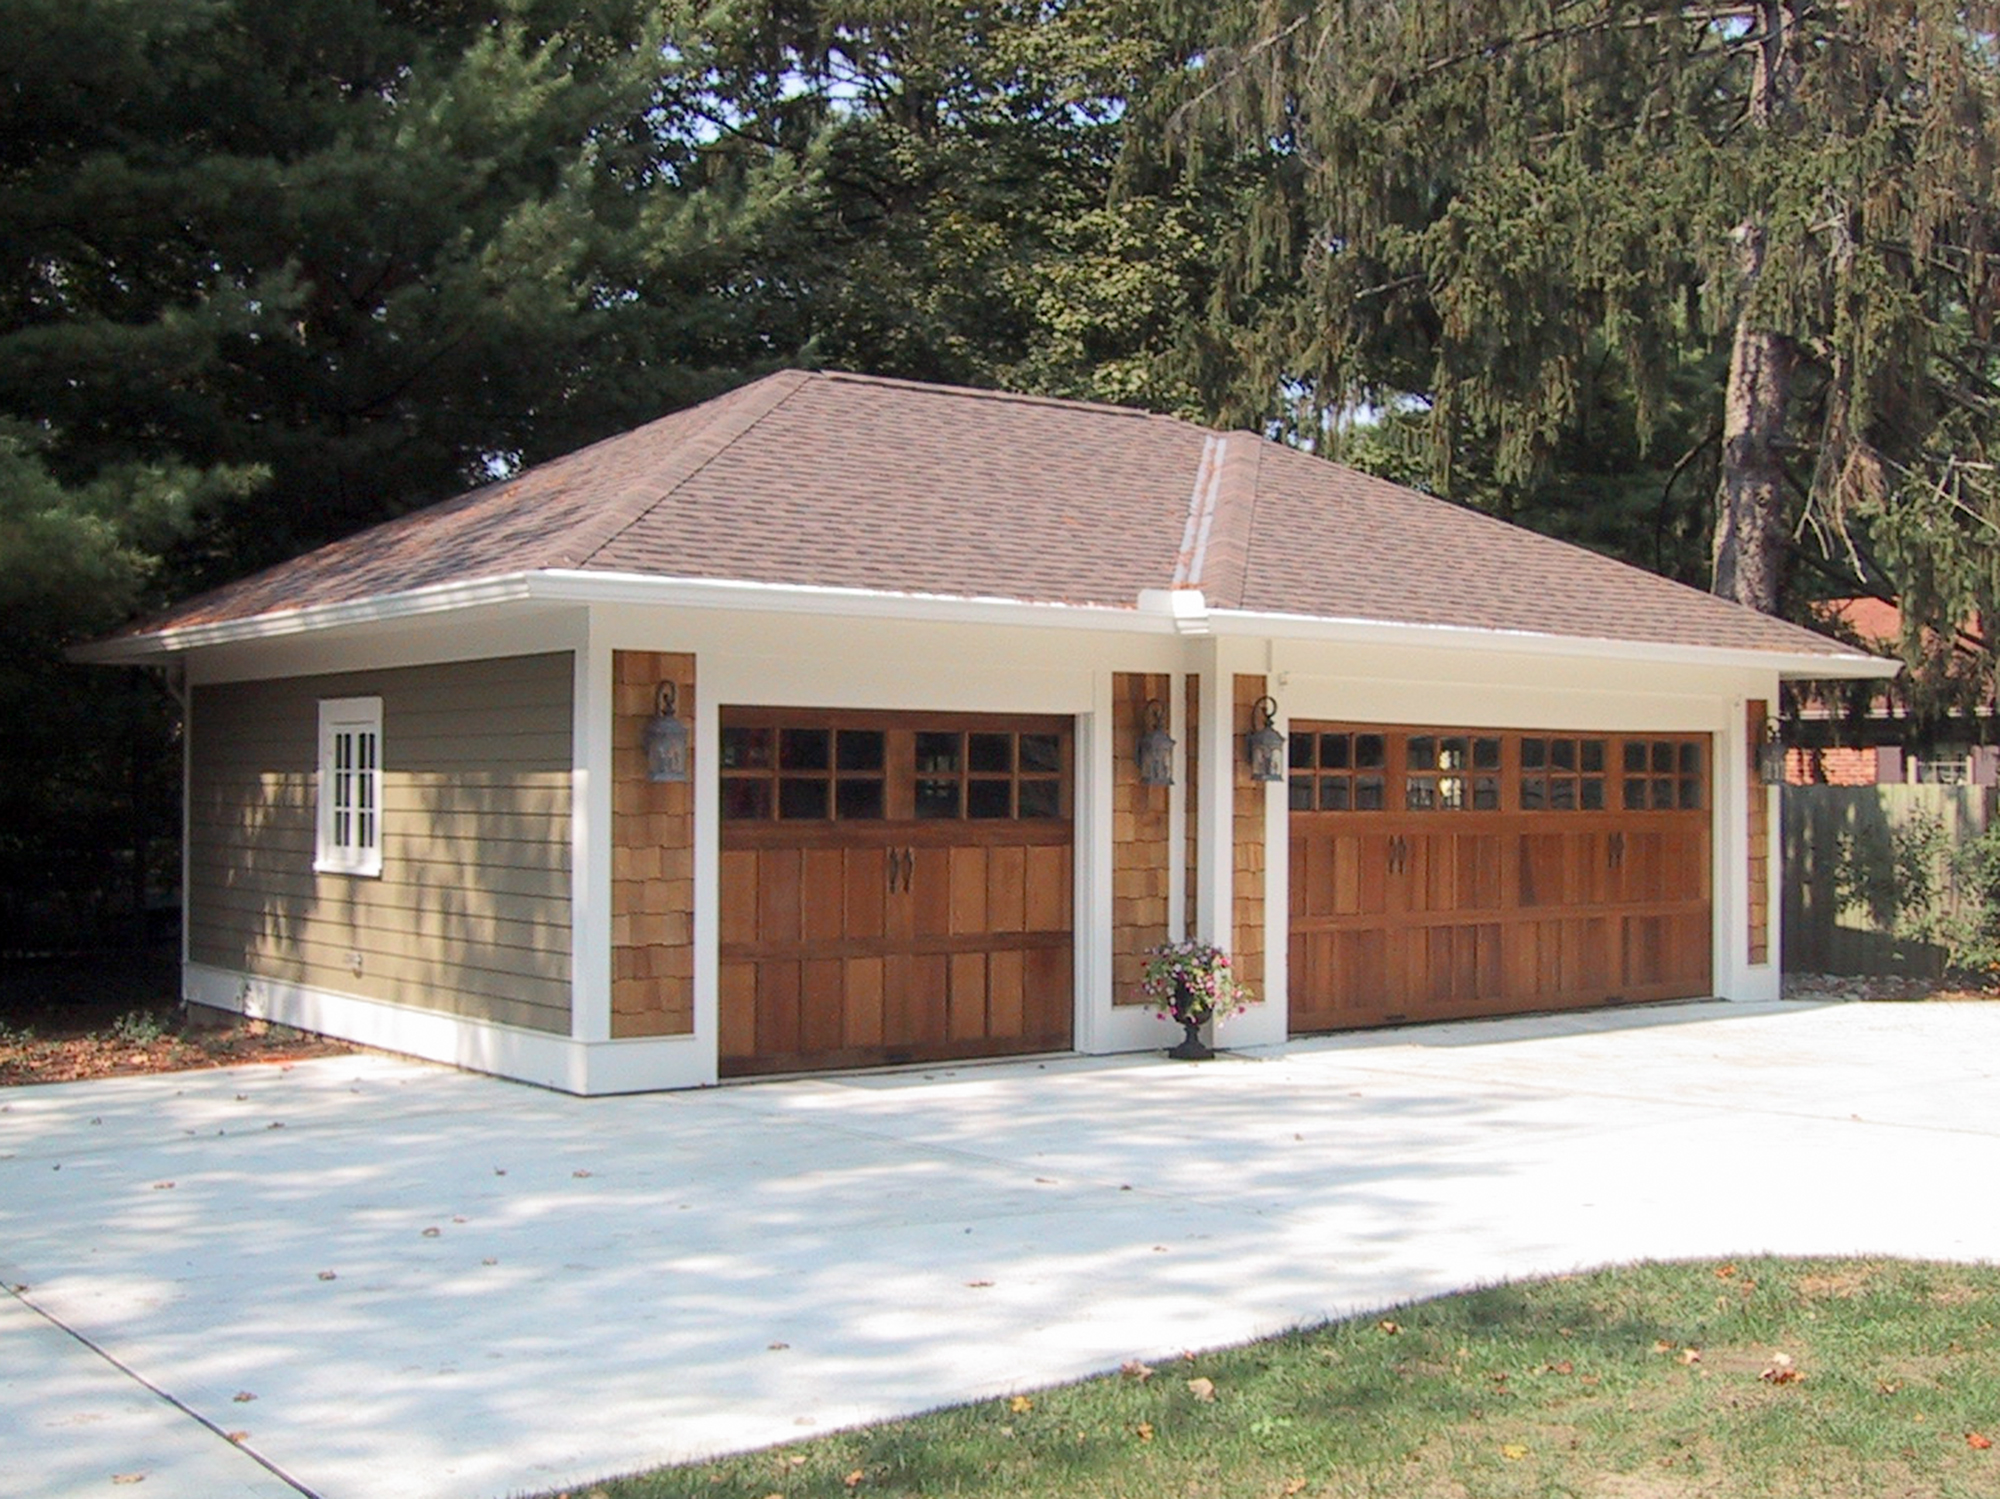 Renovated Garage matches renovated house